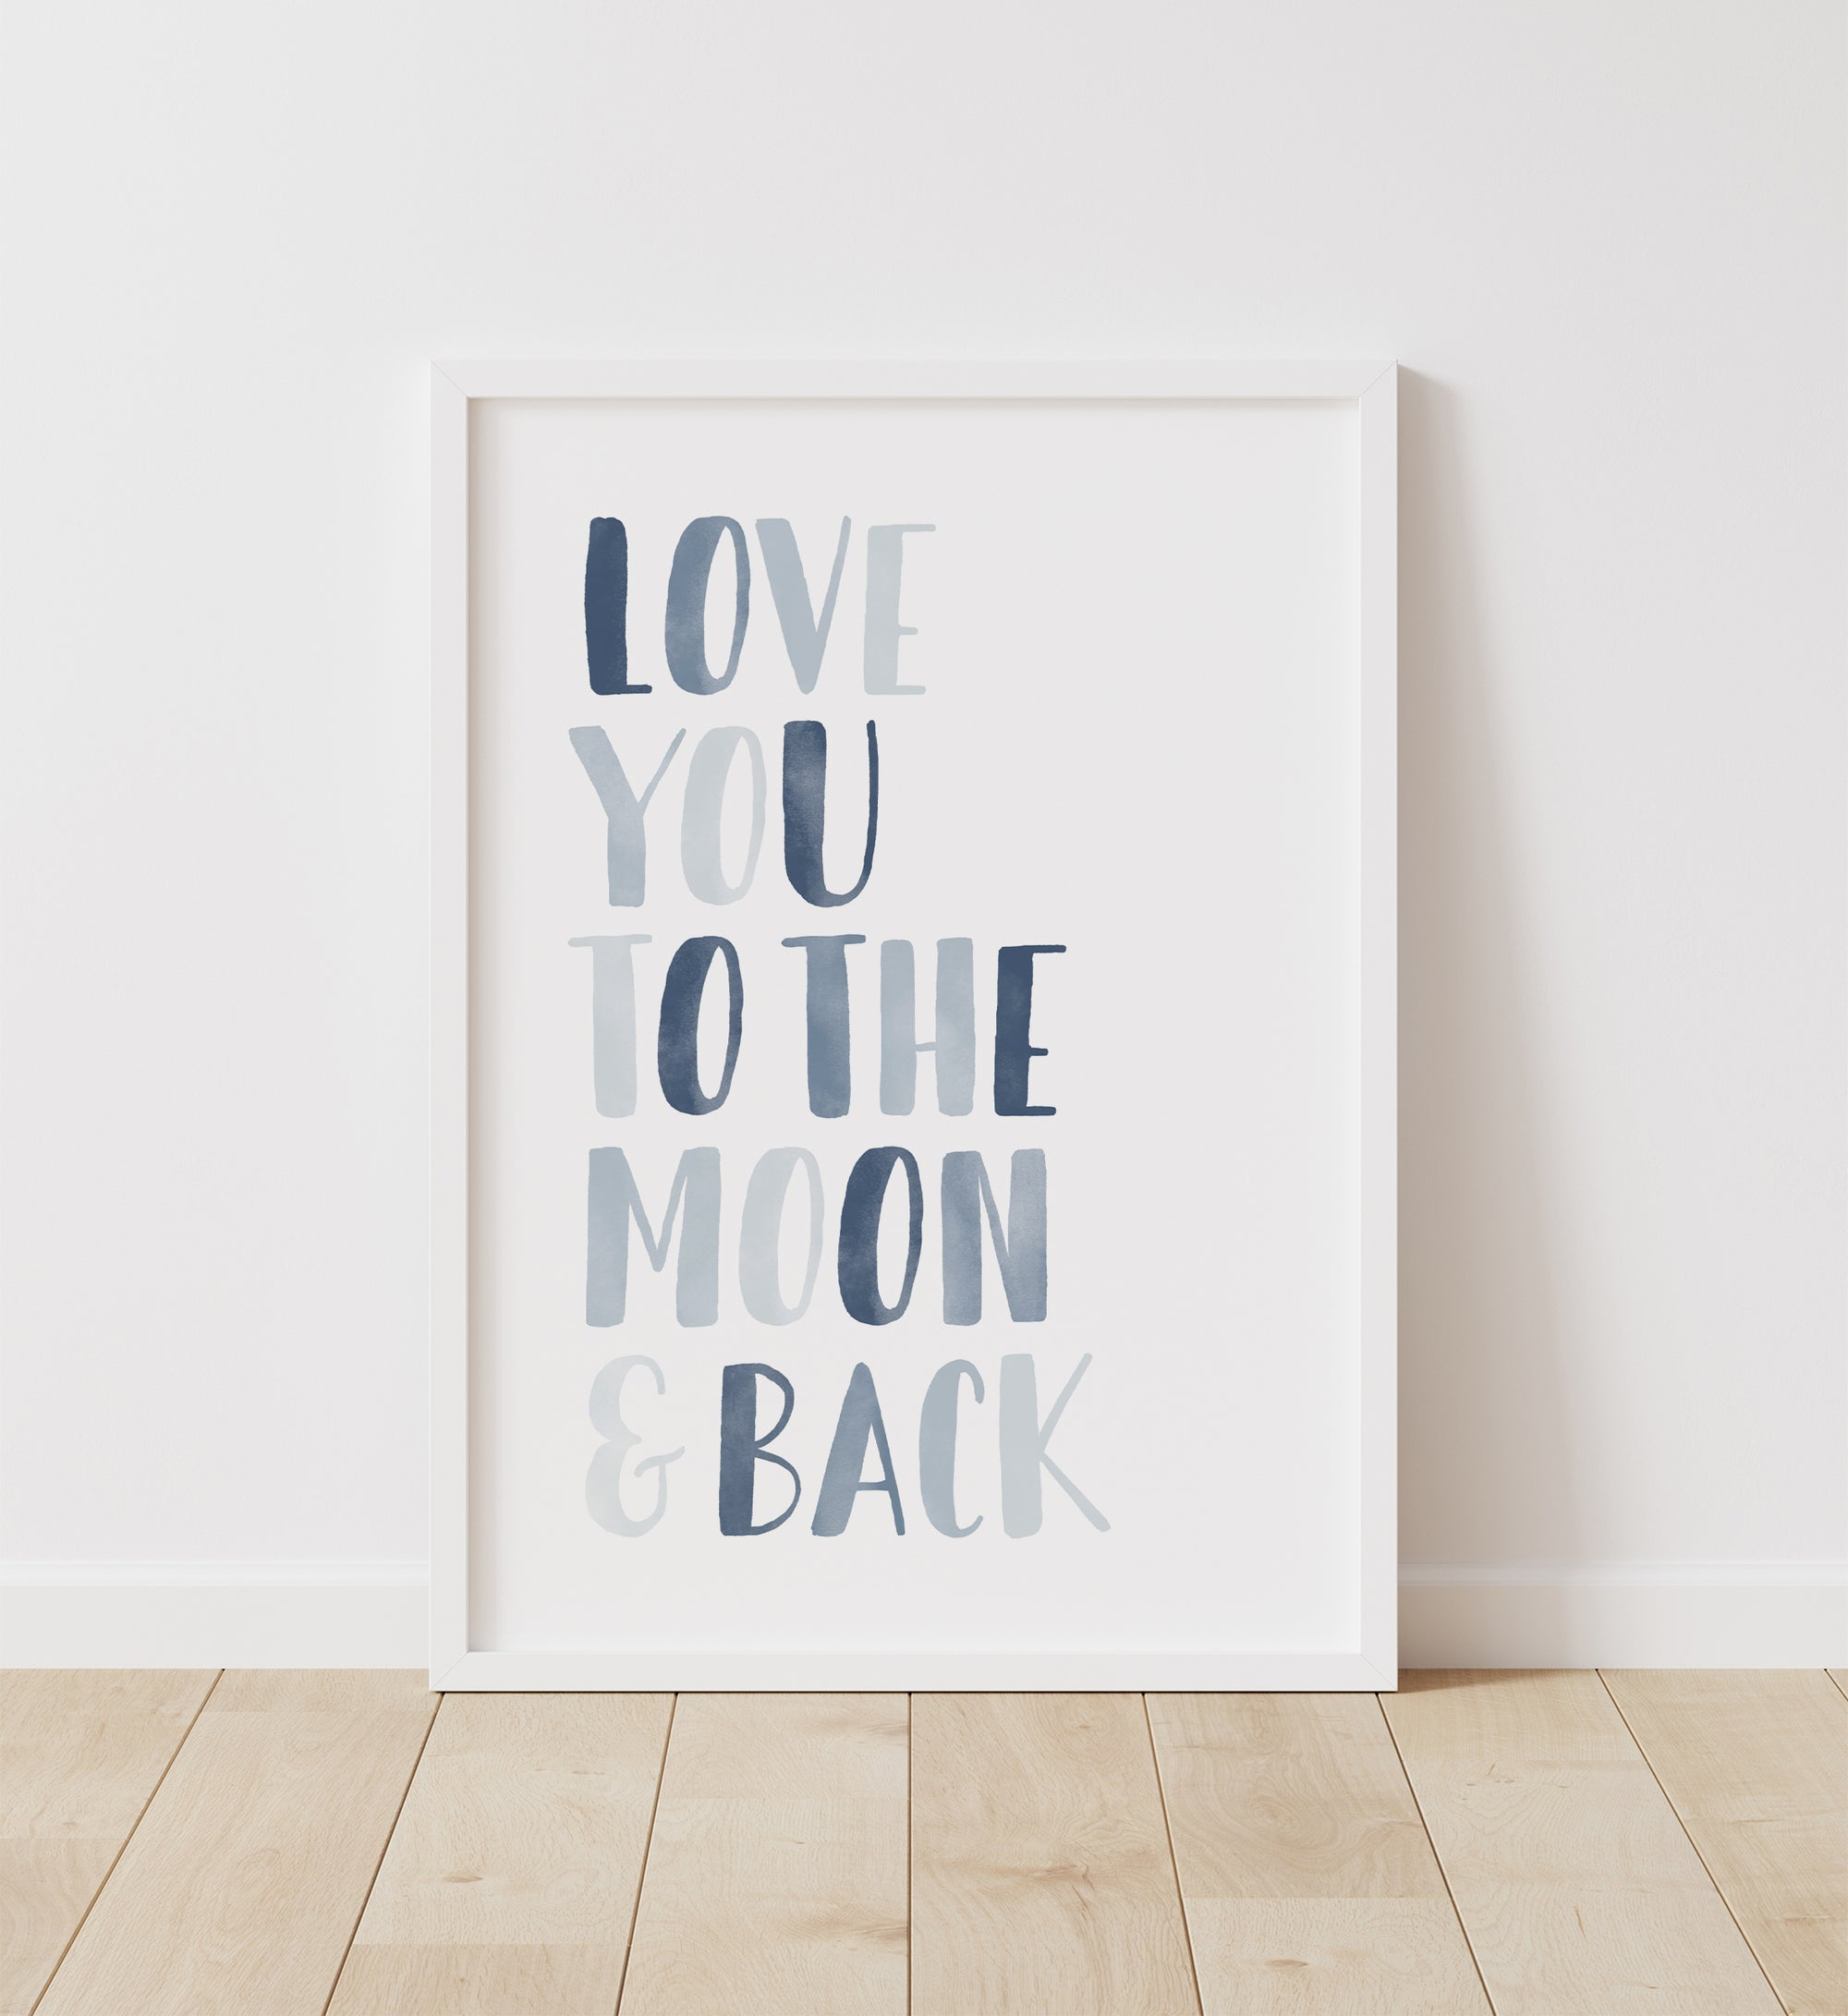 Love You to the Moon and Back - Navy